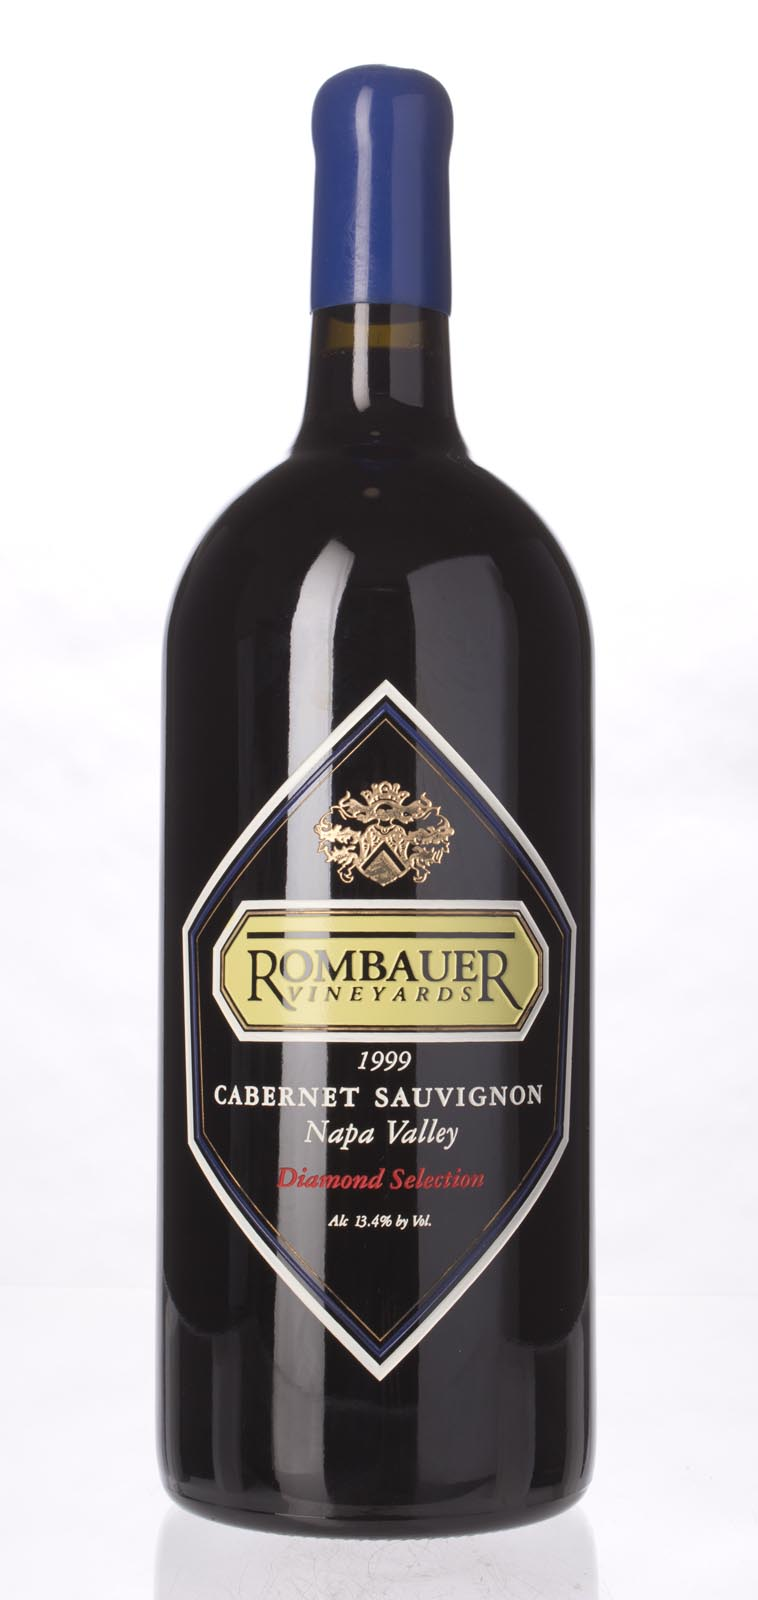 Rombauer Cabernet Sauvignon Napa Valley Diamond Selection 1999, 3L () from The BPW - Merchants of rare and fine wines.